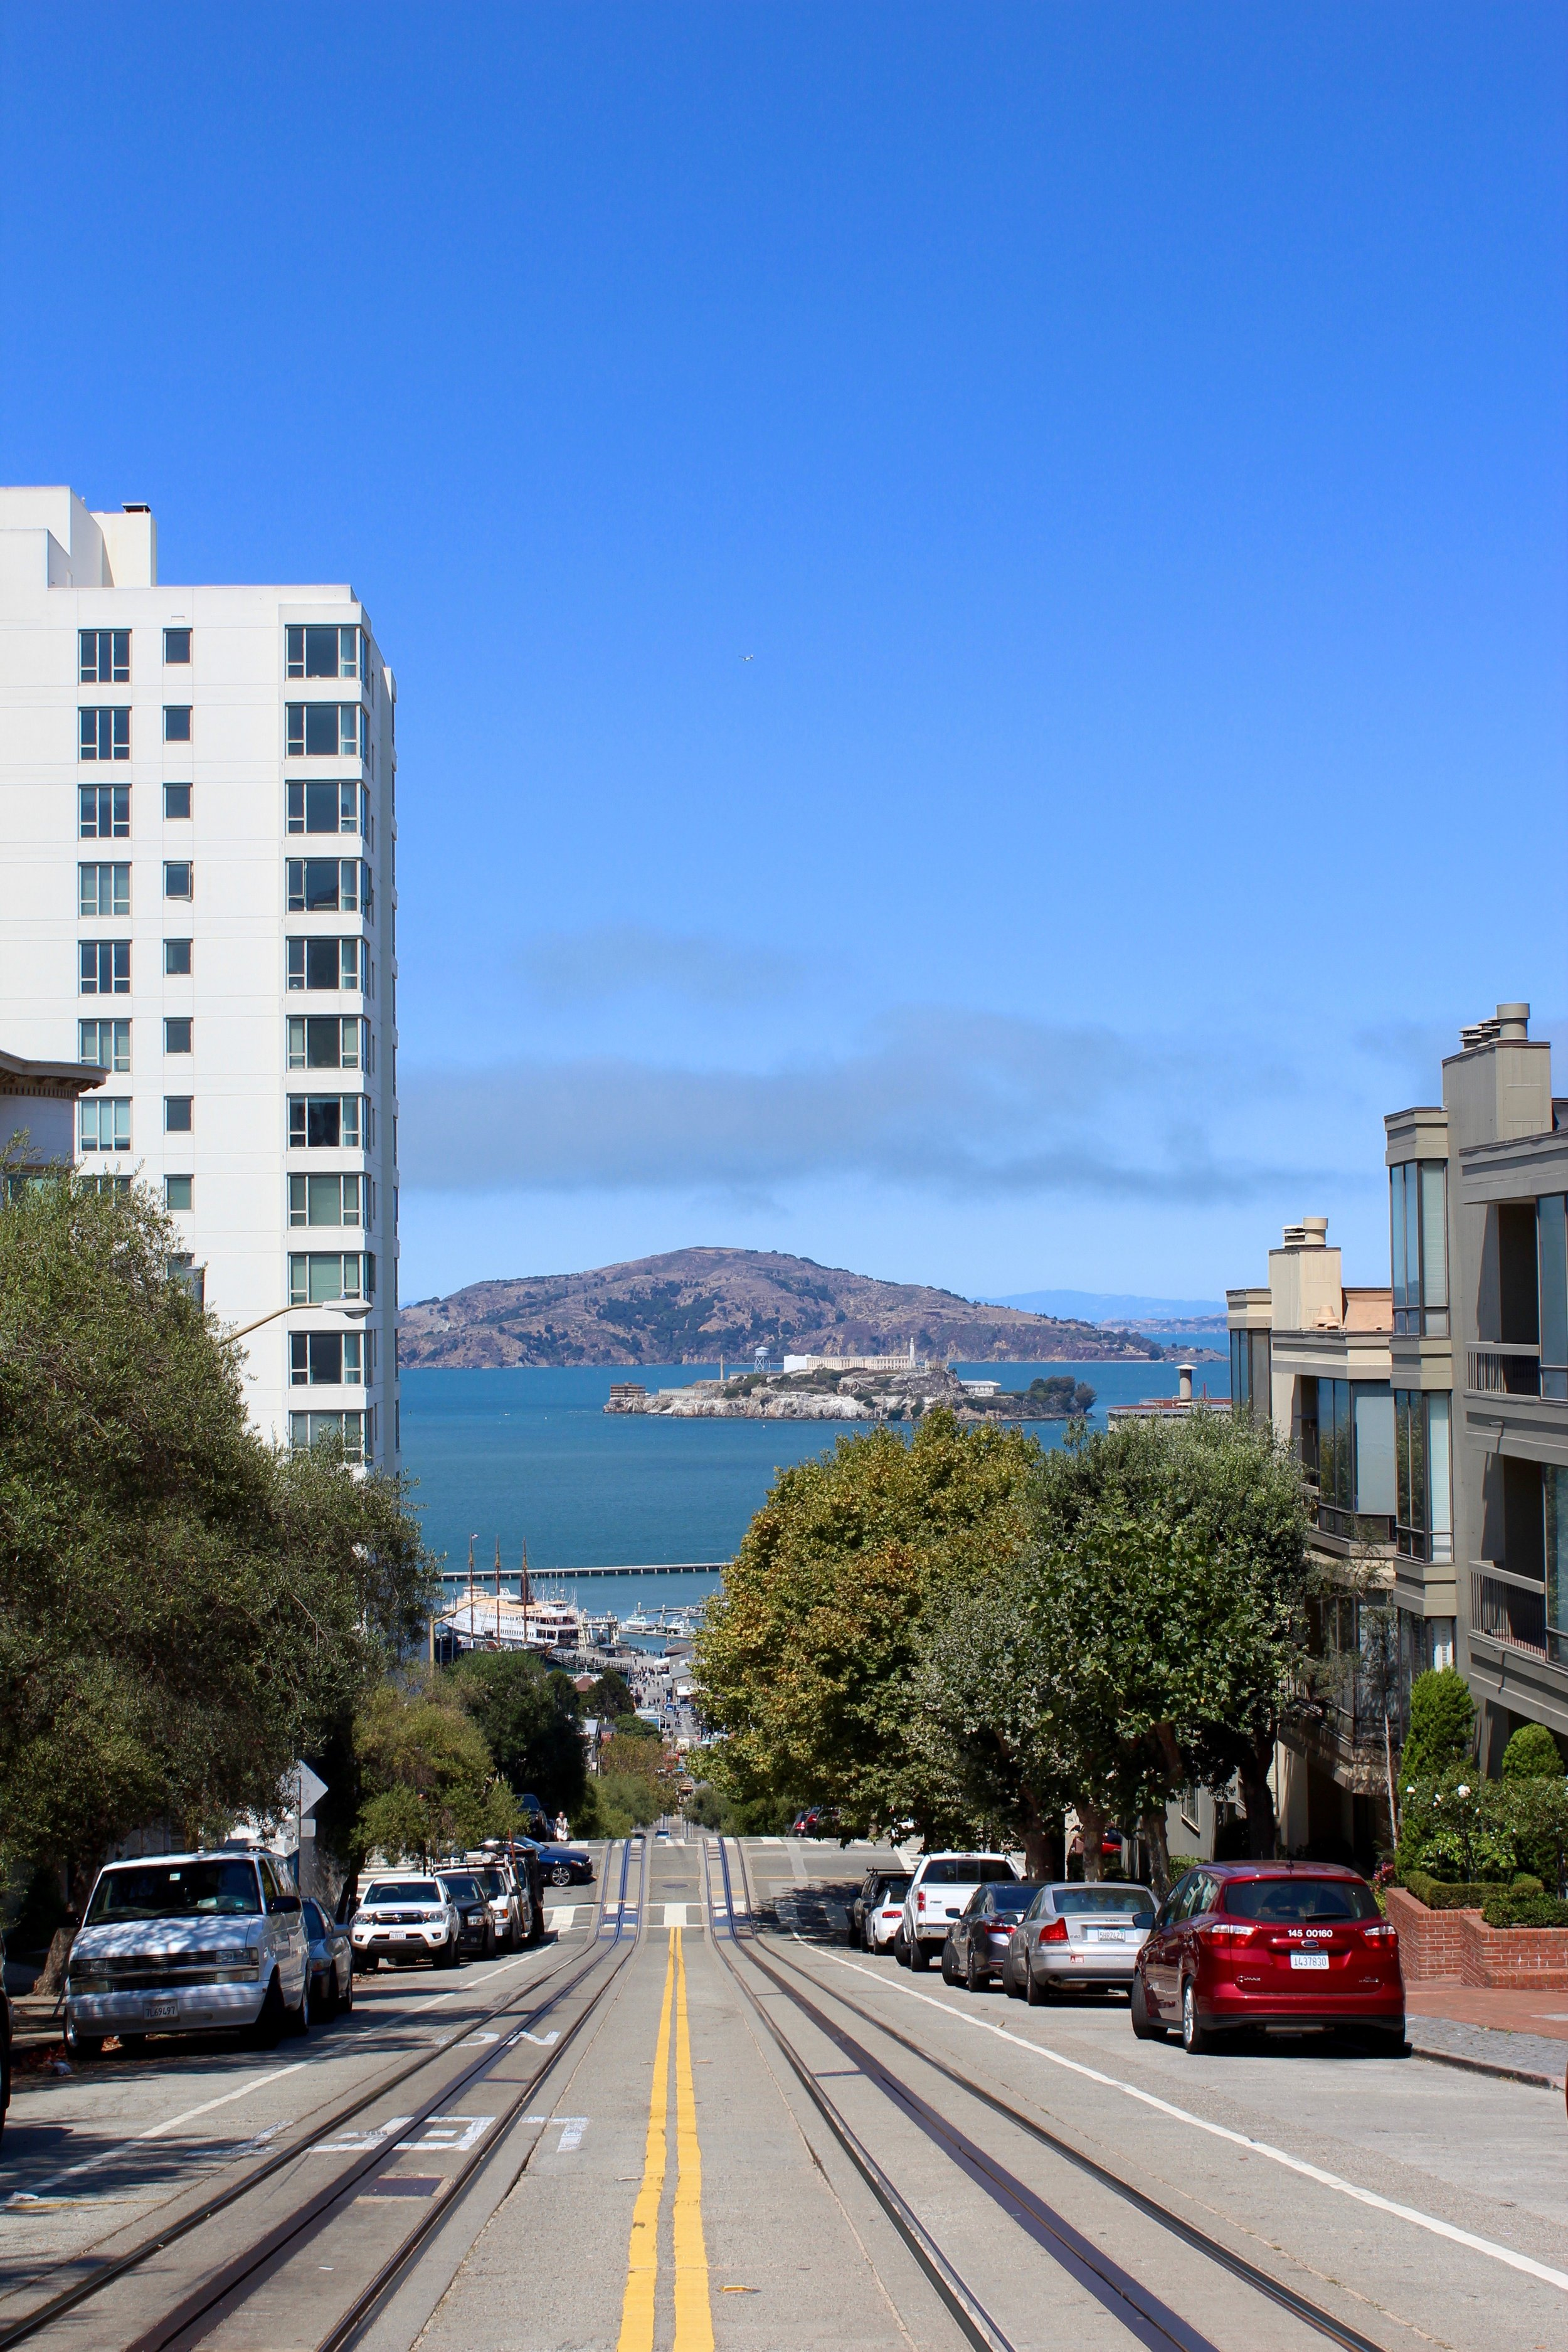 Views of  Alcatraz Island from Pacific Heights, San Francisco. (August, 2016)